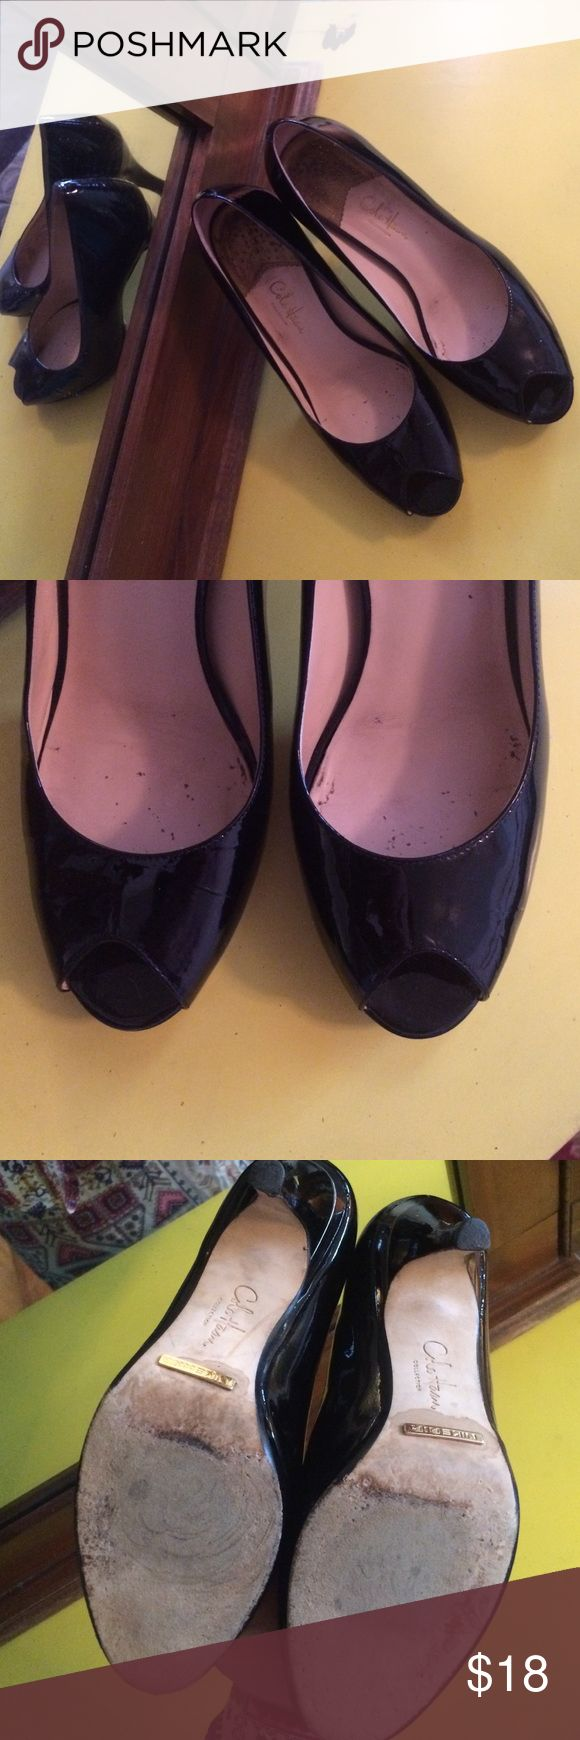 Cole Haan Peep Toe Pumps Great condition. No scuffs. Cole Haan Shoes